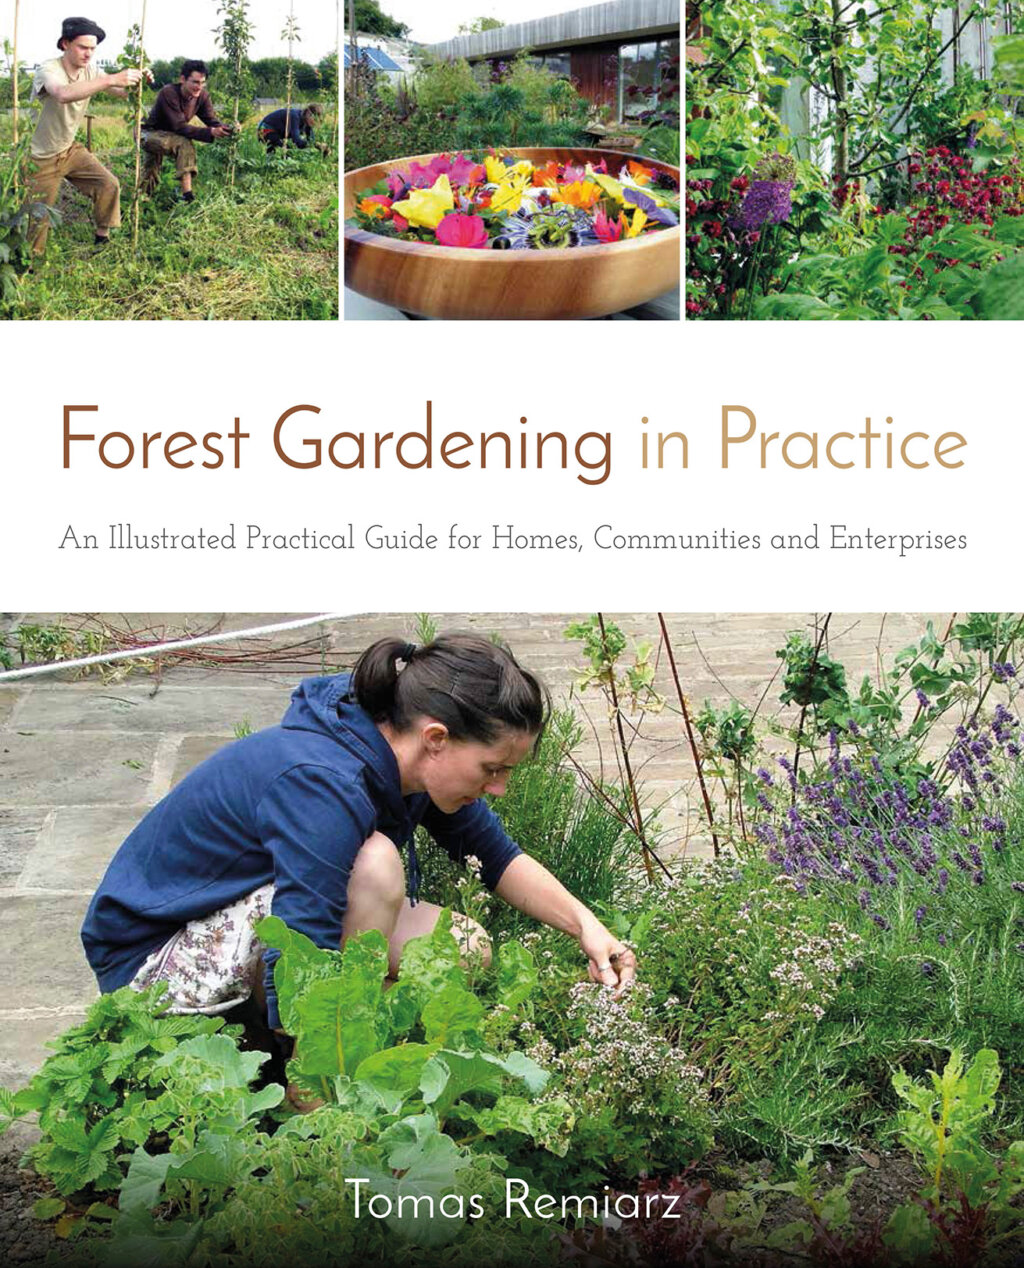 The Forest Gardening in Practice cover